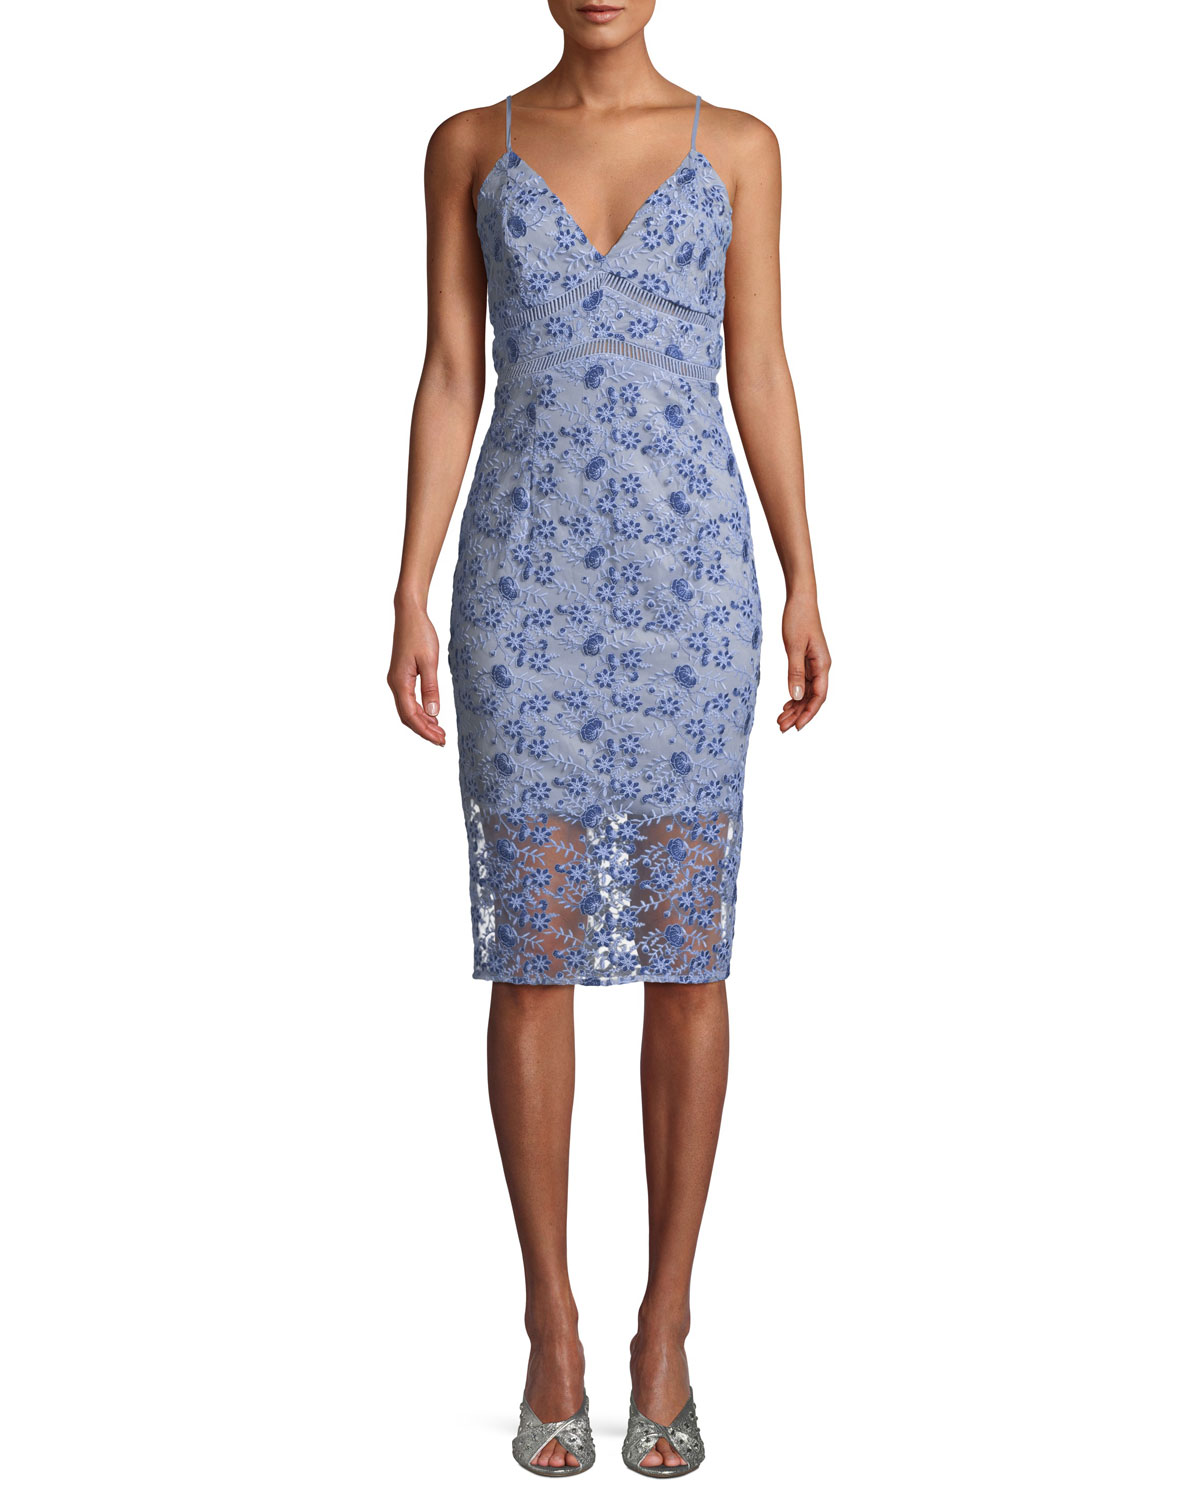 Sapphire Embroidered Sheath Cocktail Dress